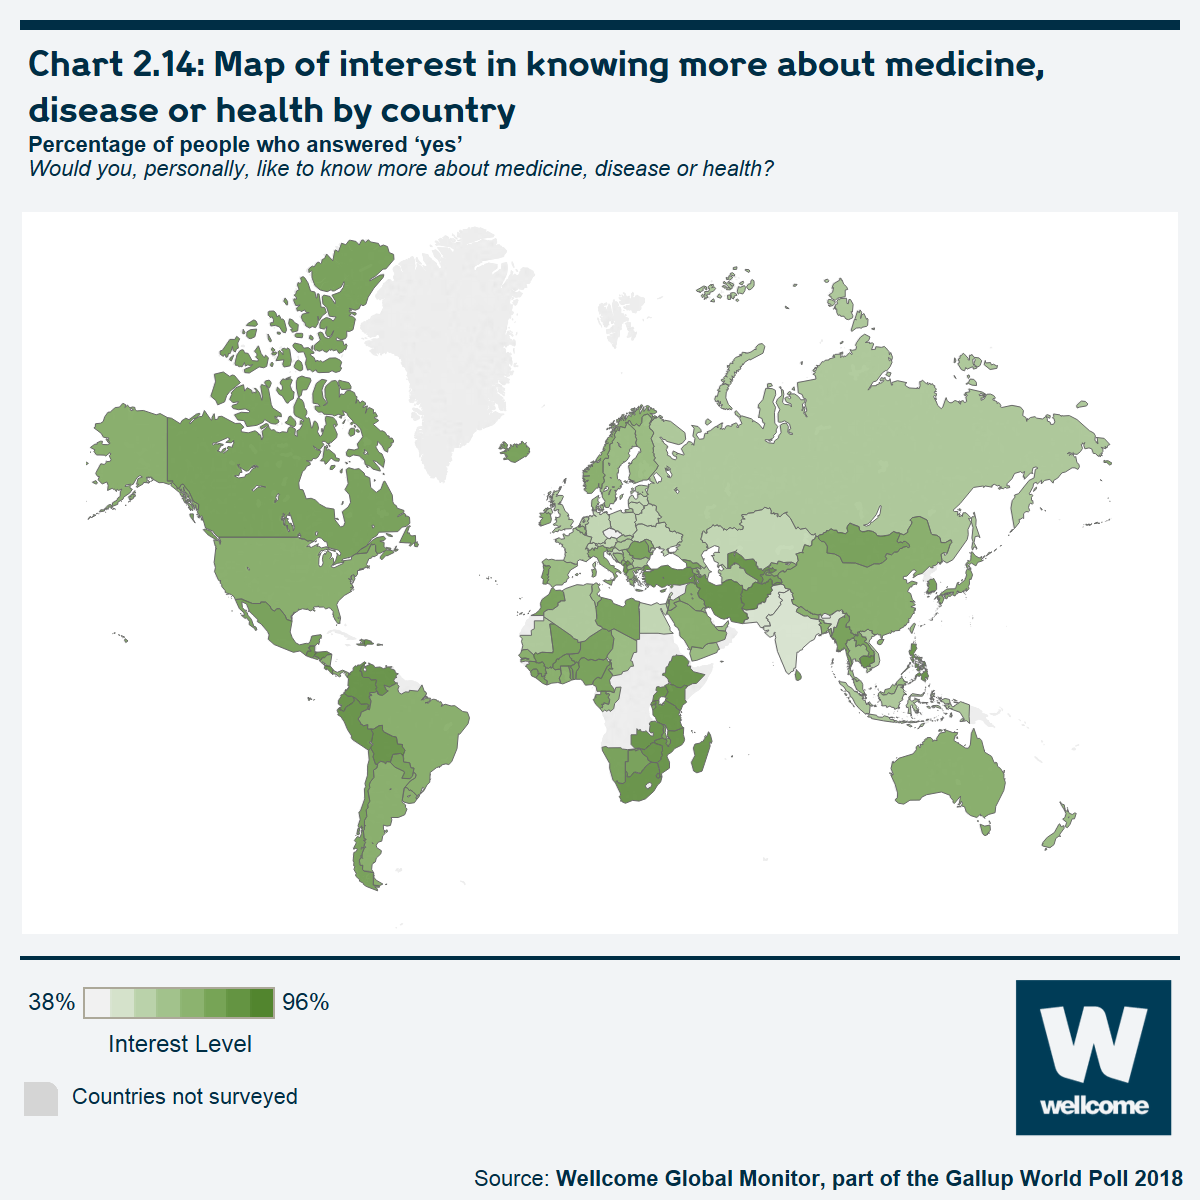 Chart 2.14 Map of interest in knowing more about medicine, disease or health by country